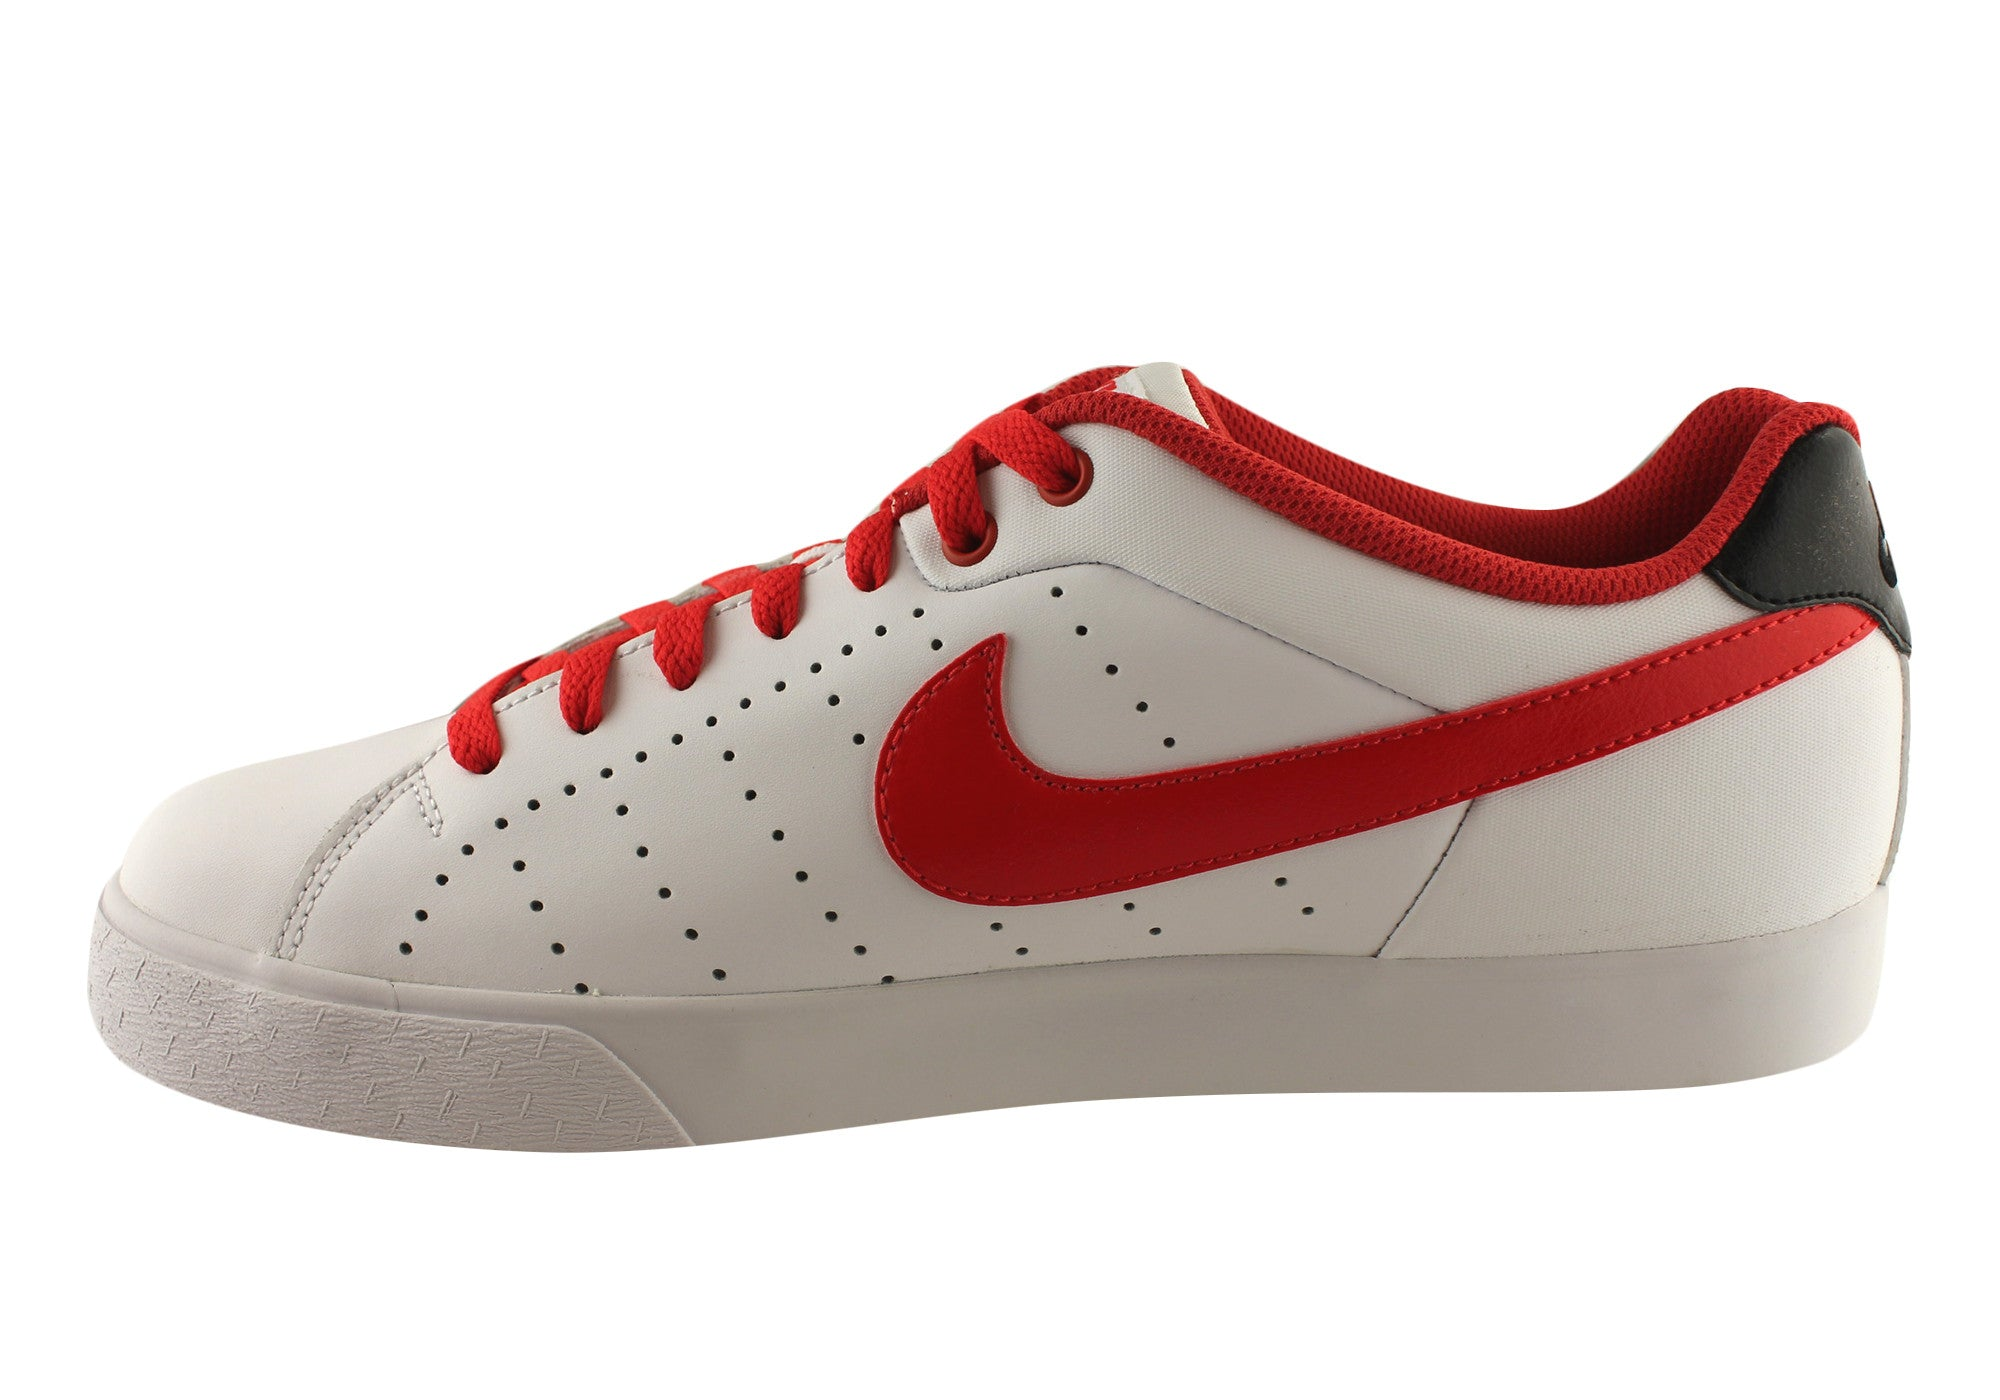 Nike Court Tour Mens Casual Shoes/Sneakers | Brand House ...